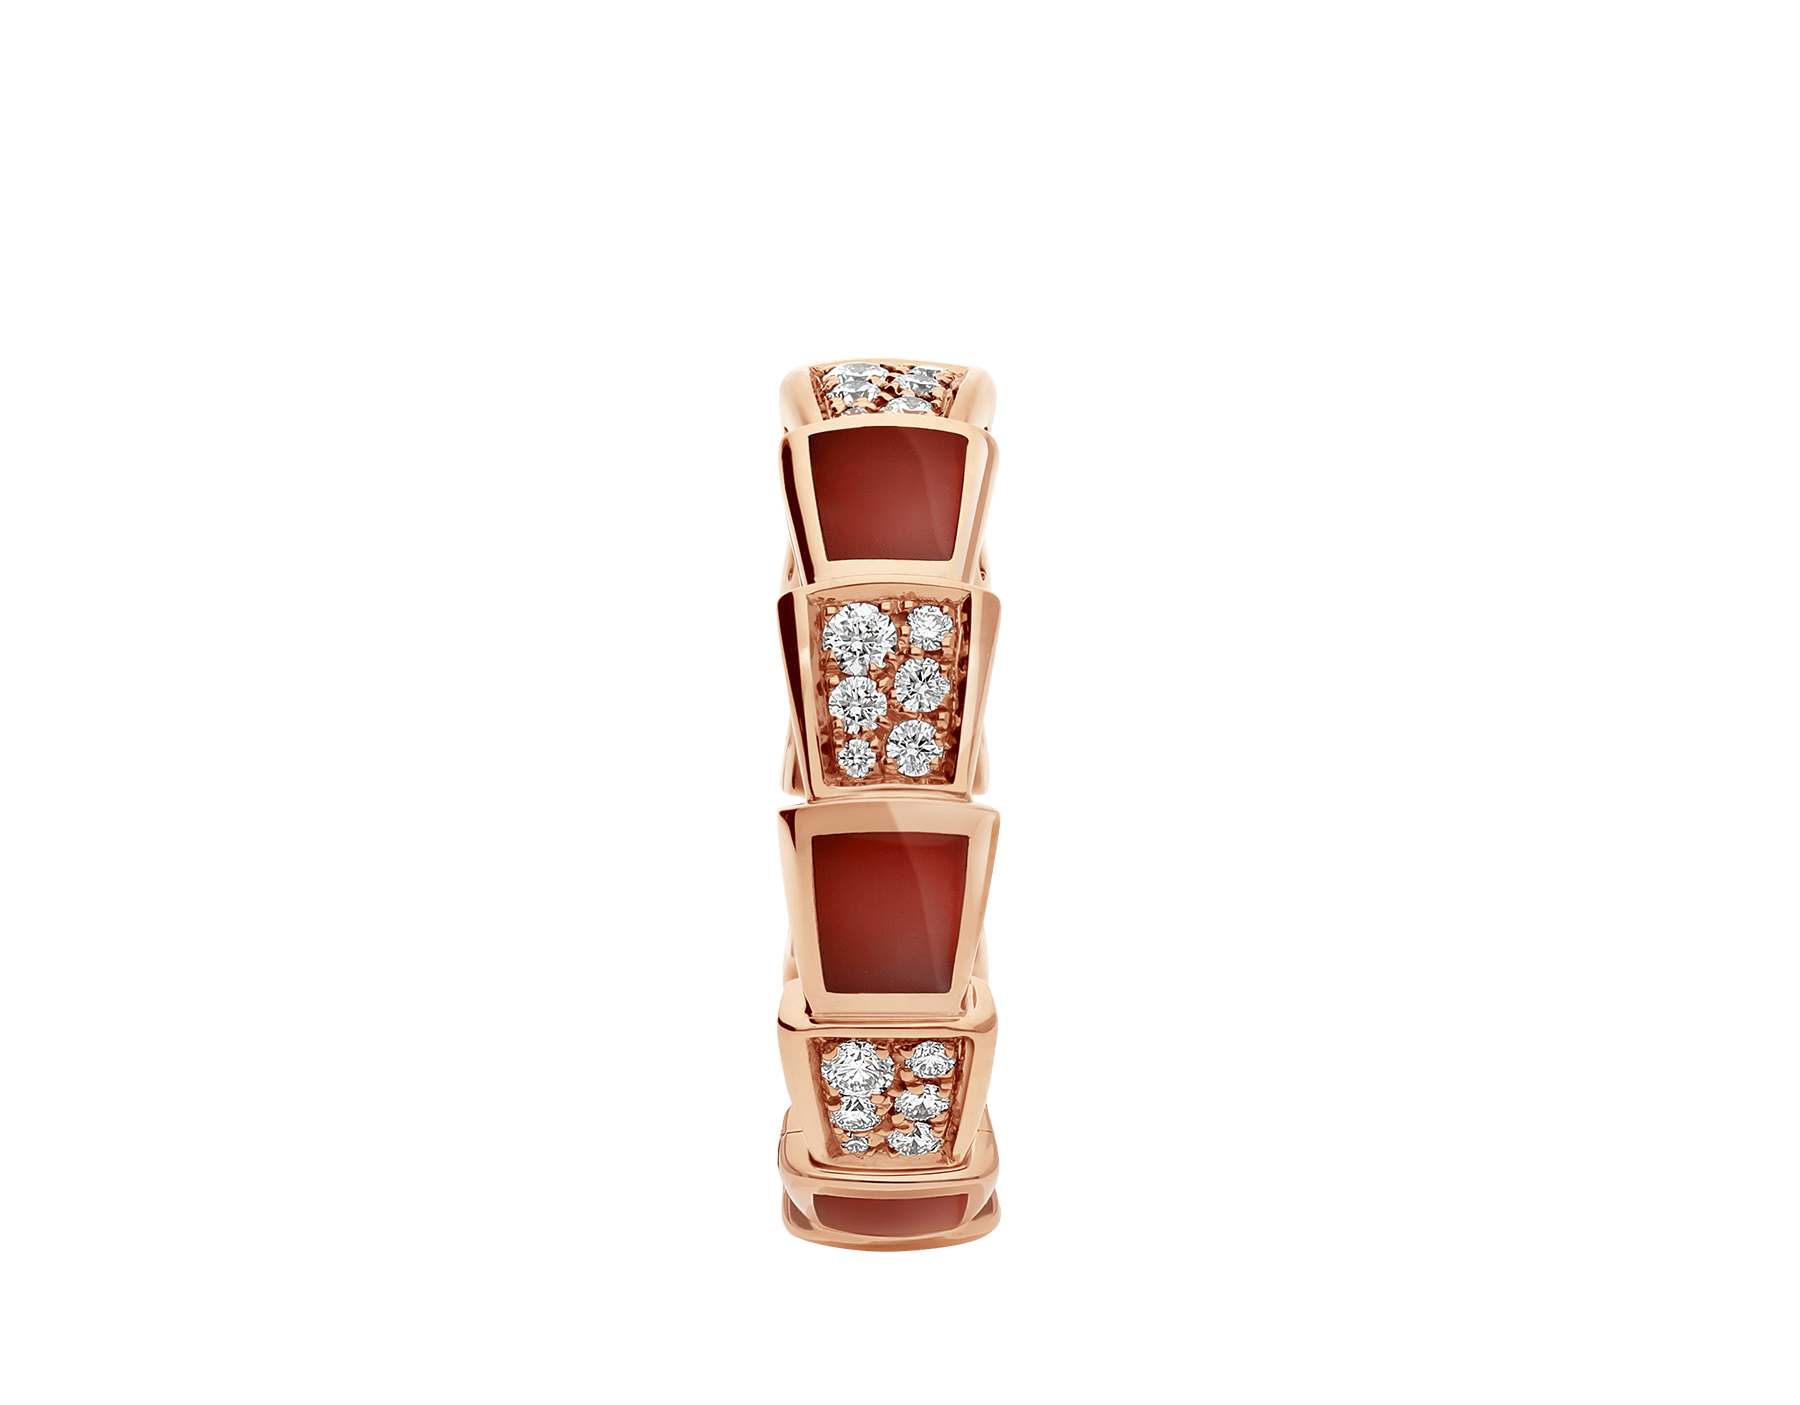 Serpenti Viper band ring in 18 kt rose gold set with carnelian elements and pavé diamonds (0.43 ct). AN857927 image 2